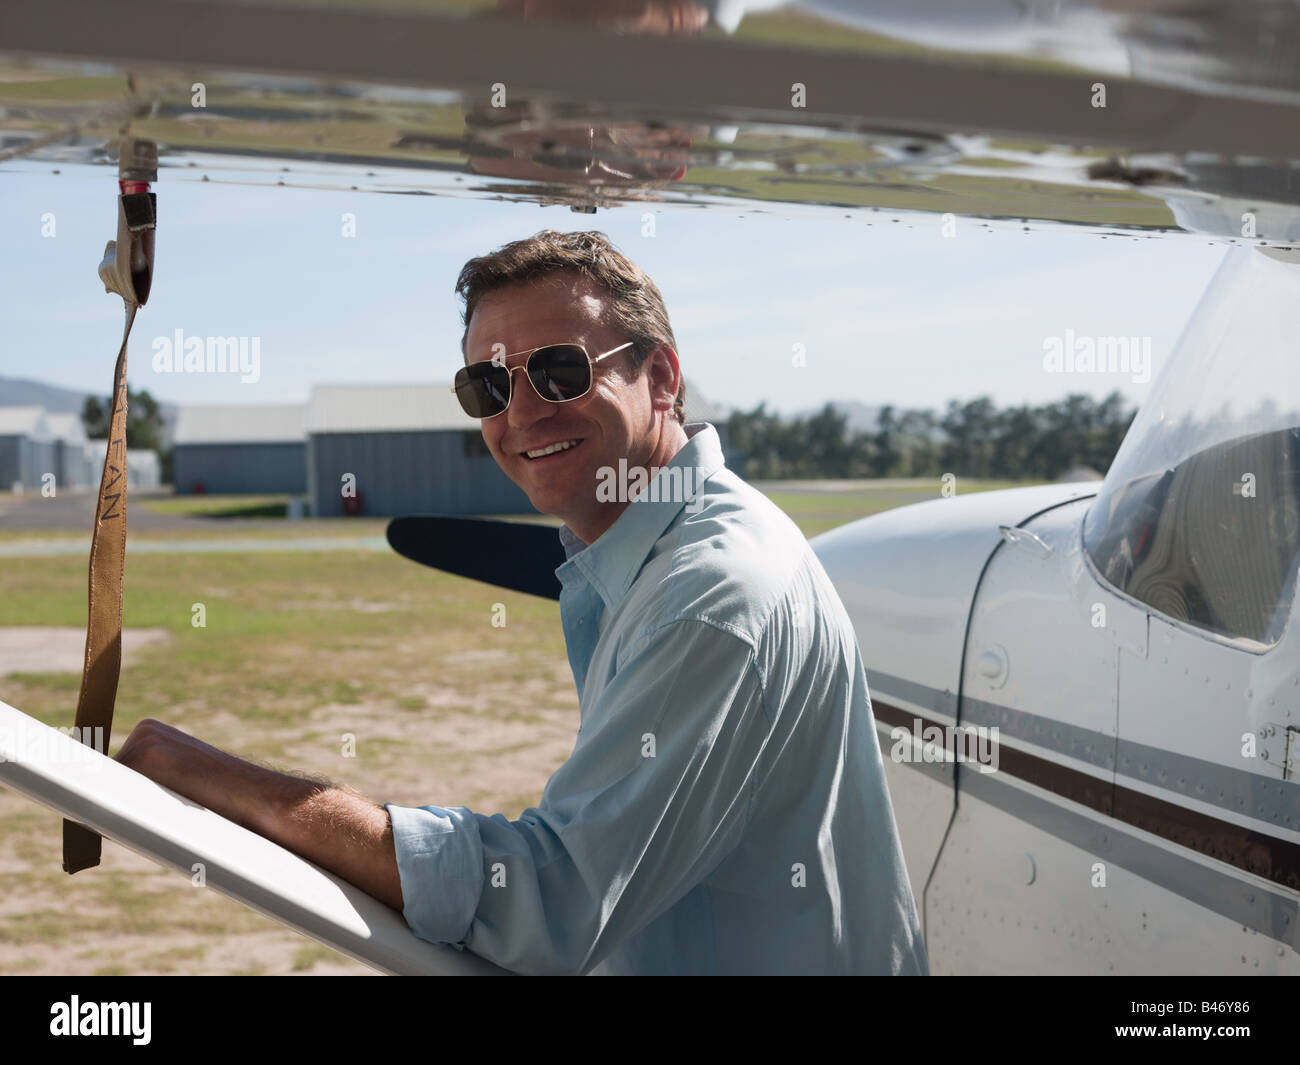 Man by private aeroplane - Stock Image